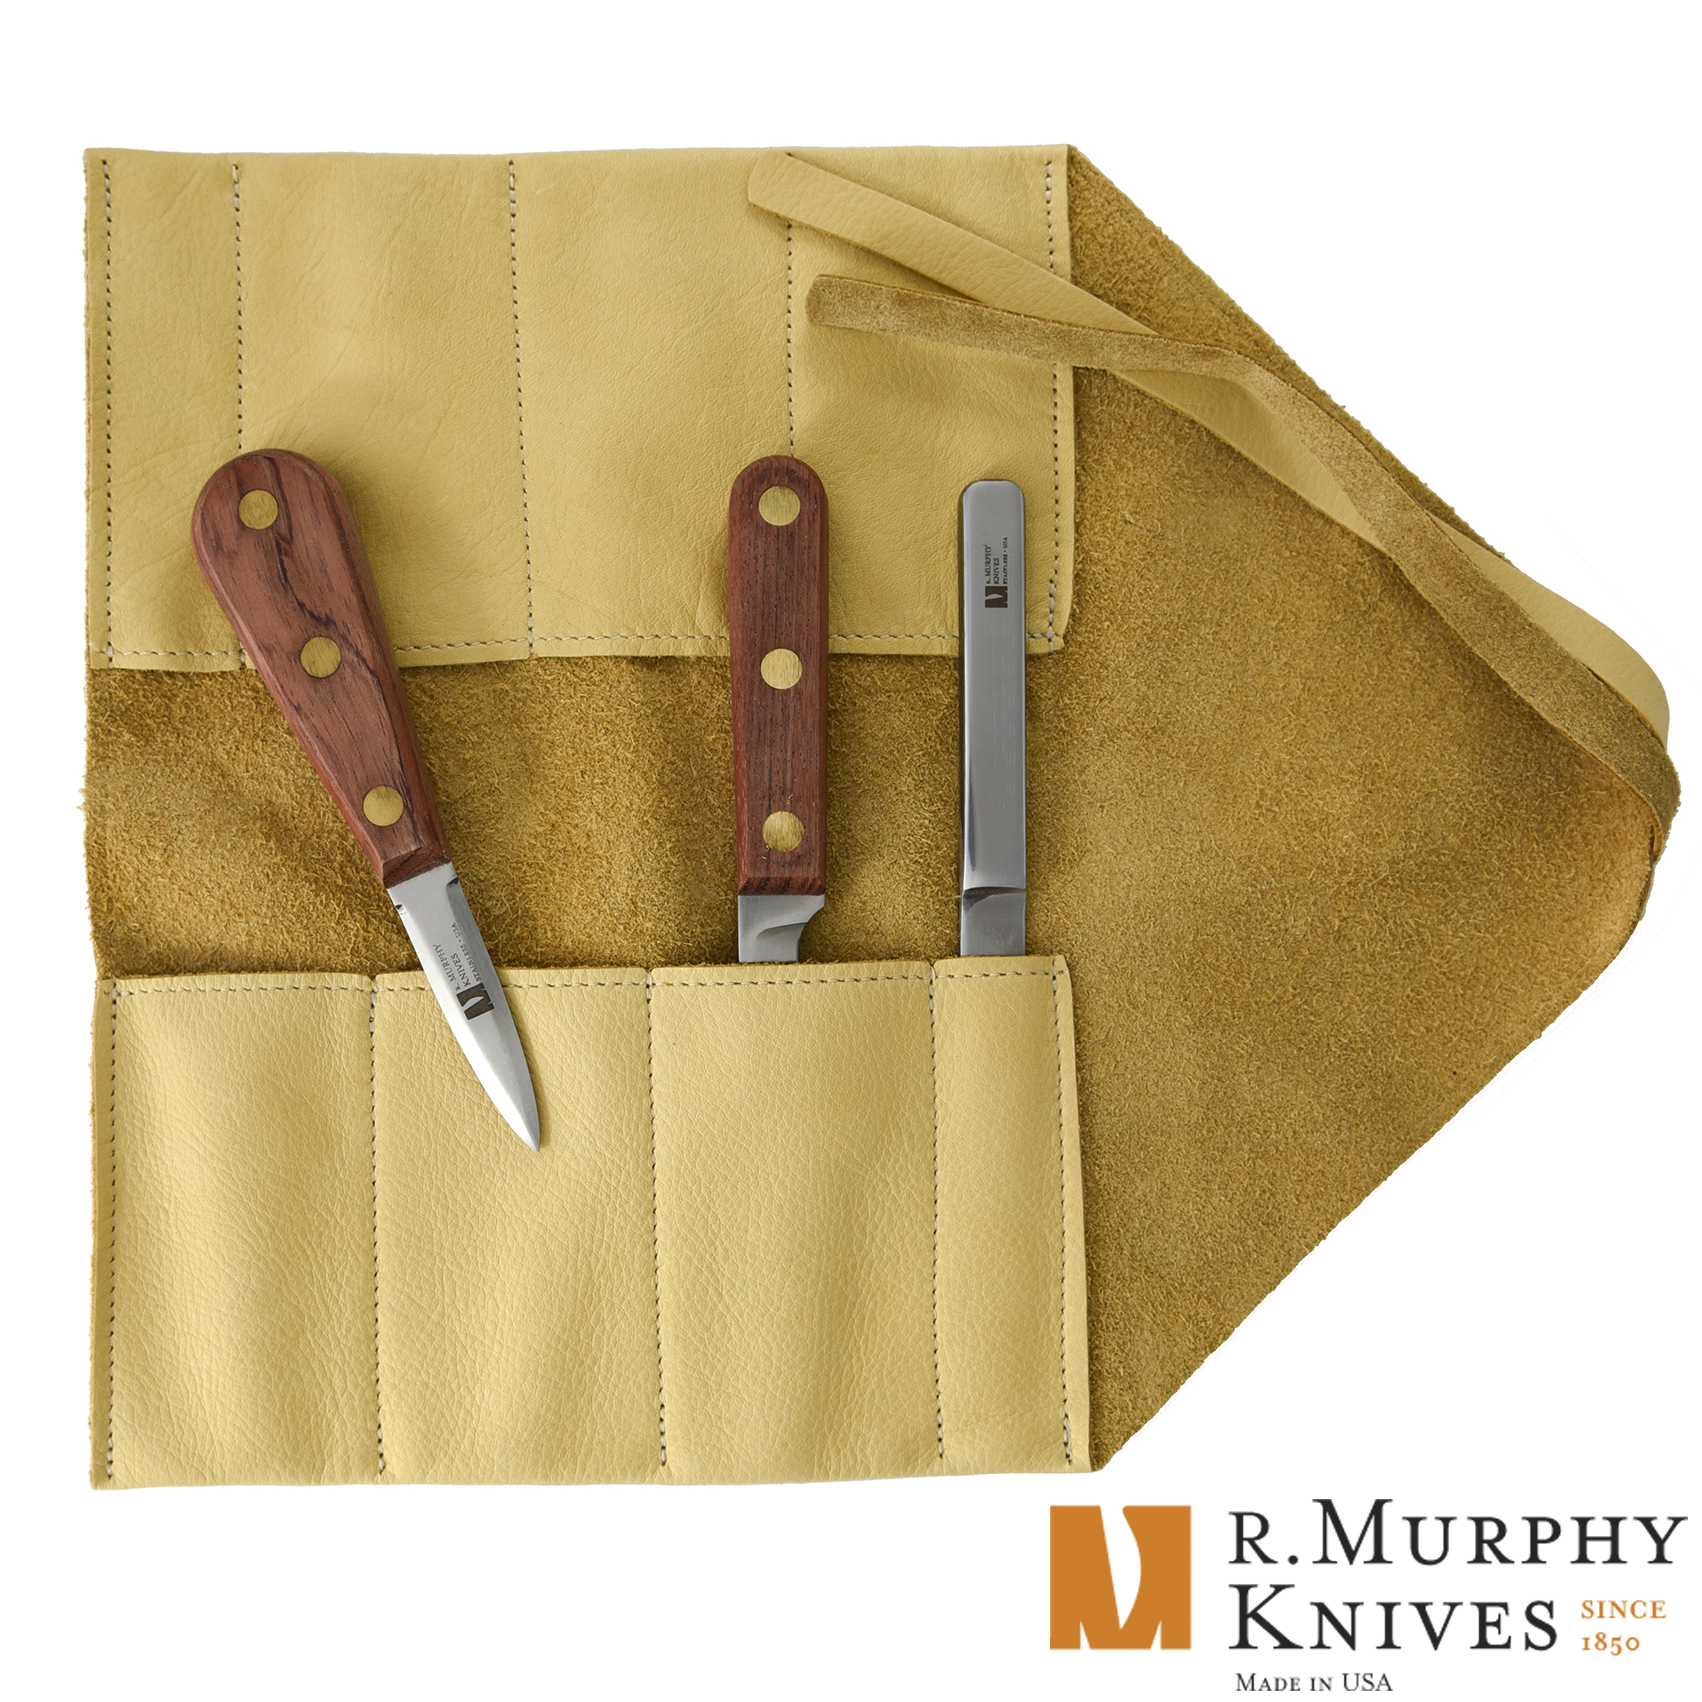 Product Photography   Client: R. Murphy Knives